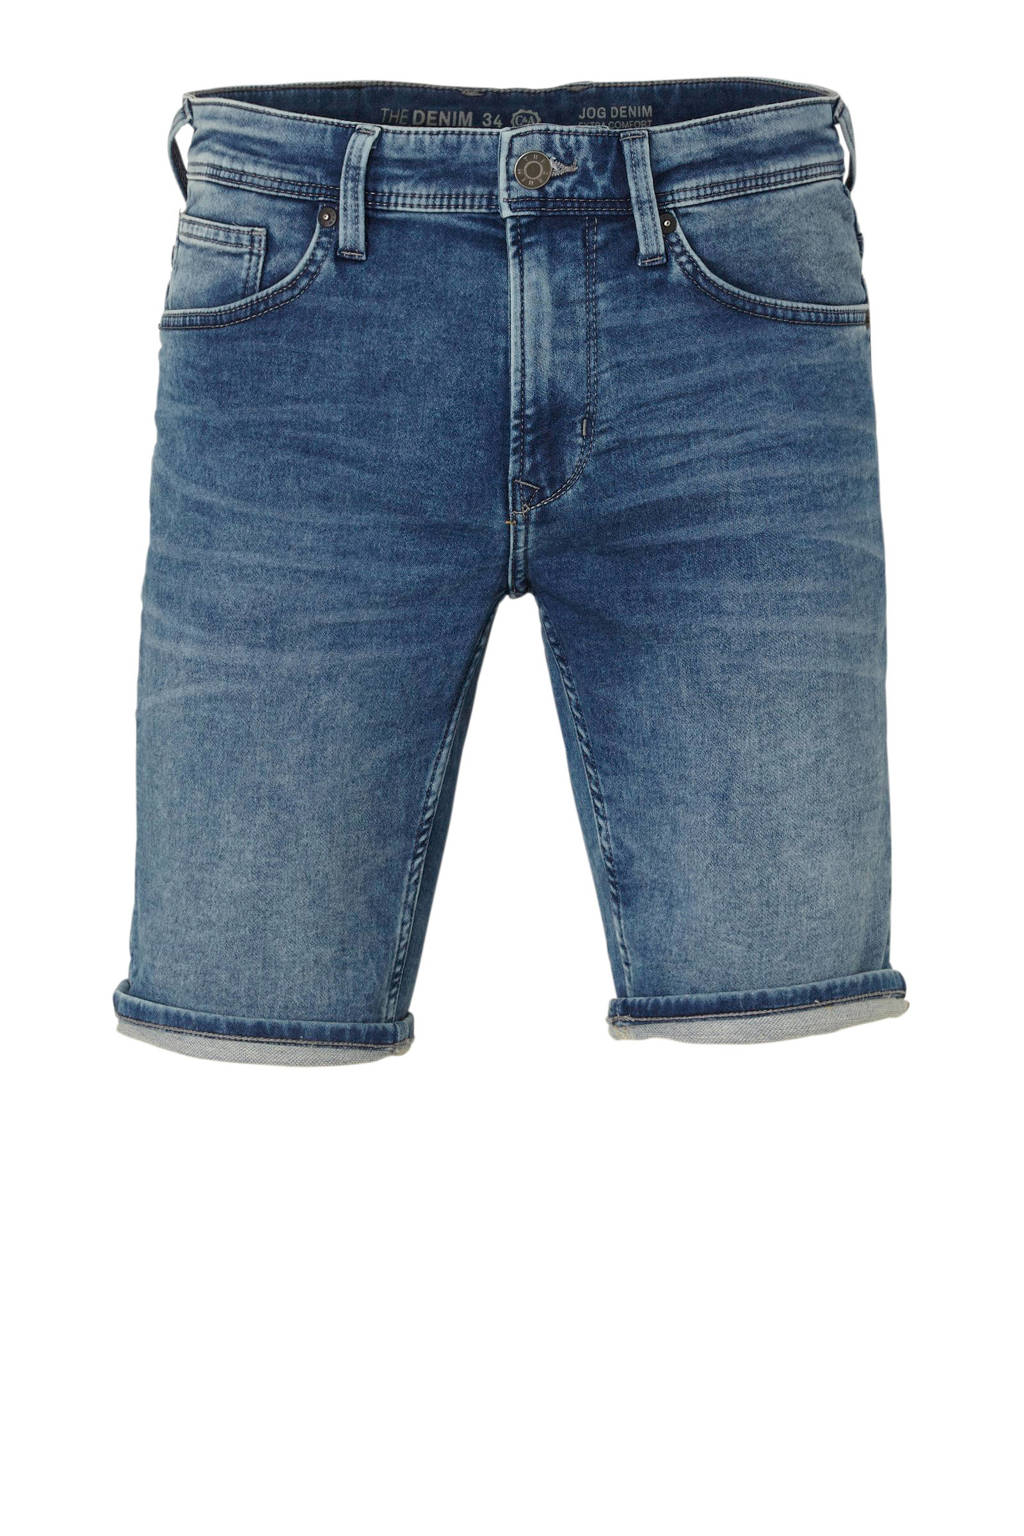 C&A The Denim regular fit denim jeans short, middenblauw